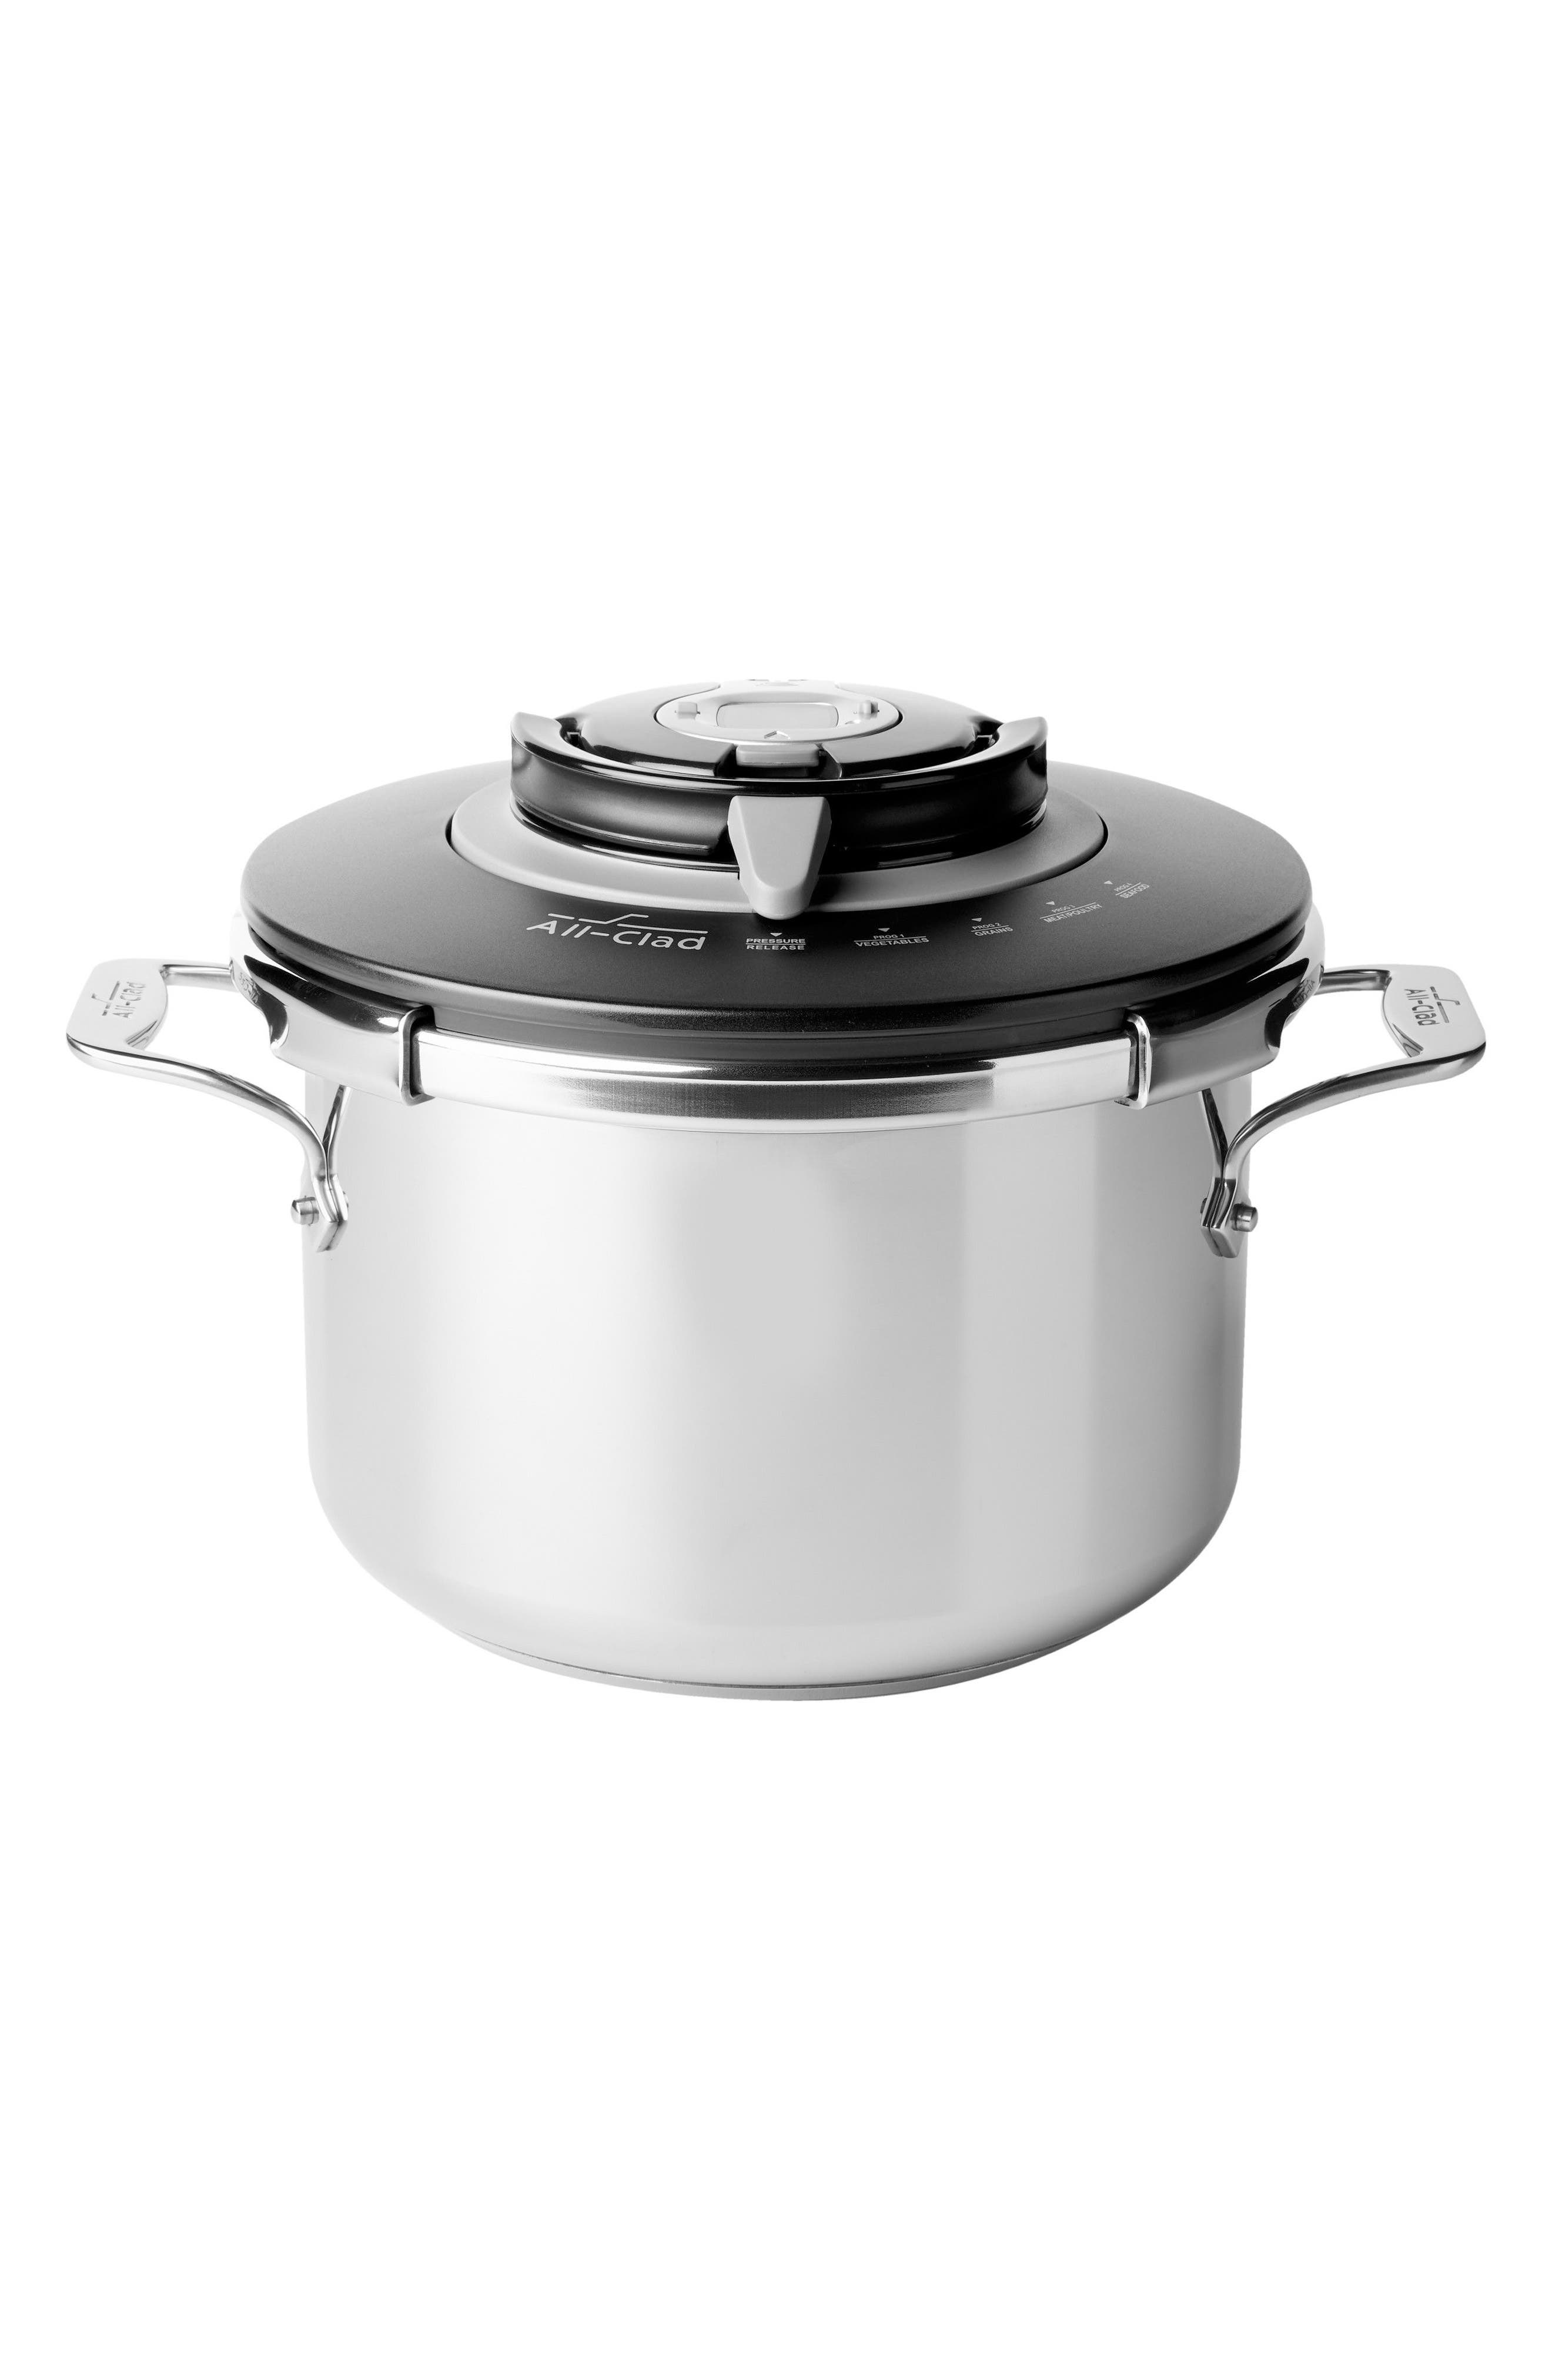 Alternate Image 1 Selected - All-Clad 8.4-Quart Stovetop Pressure Cooker